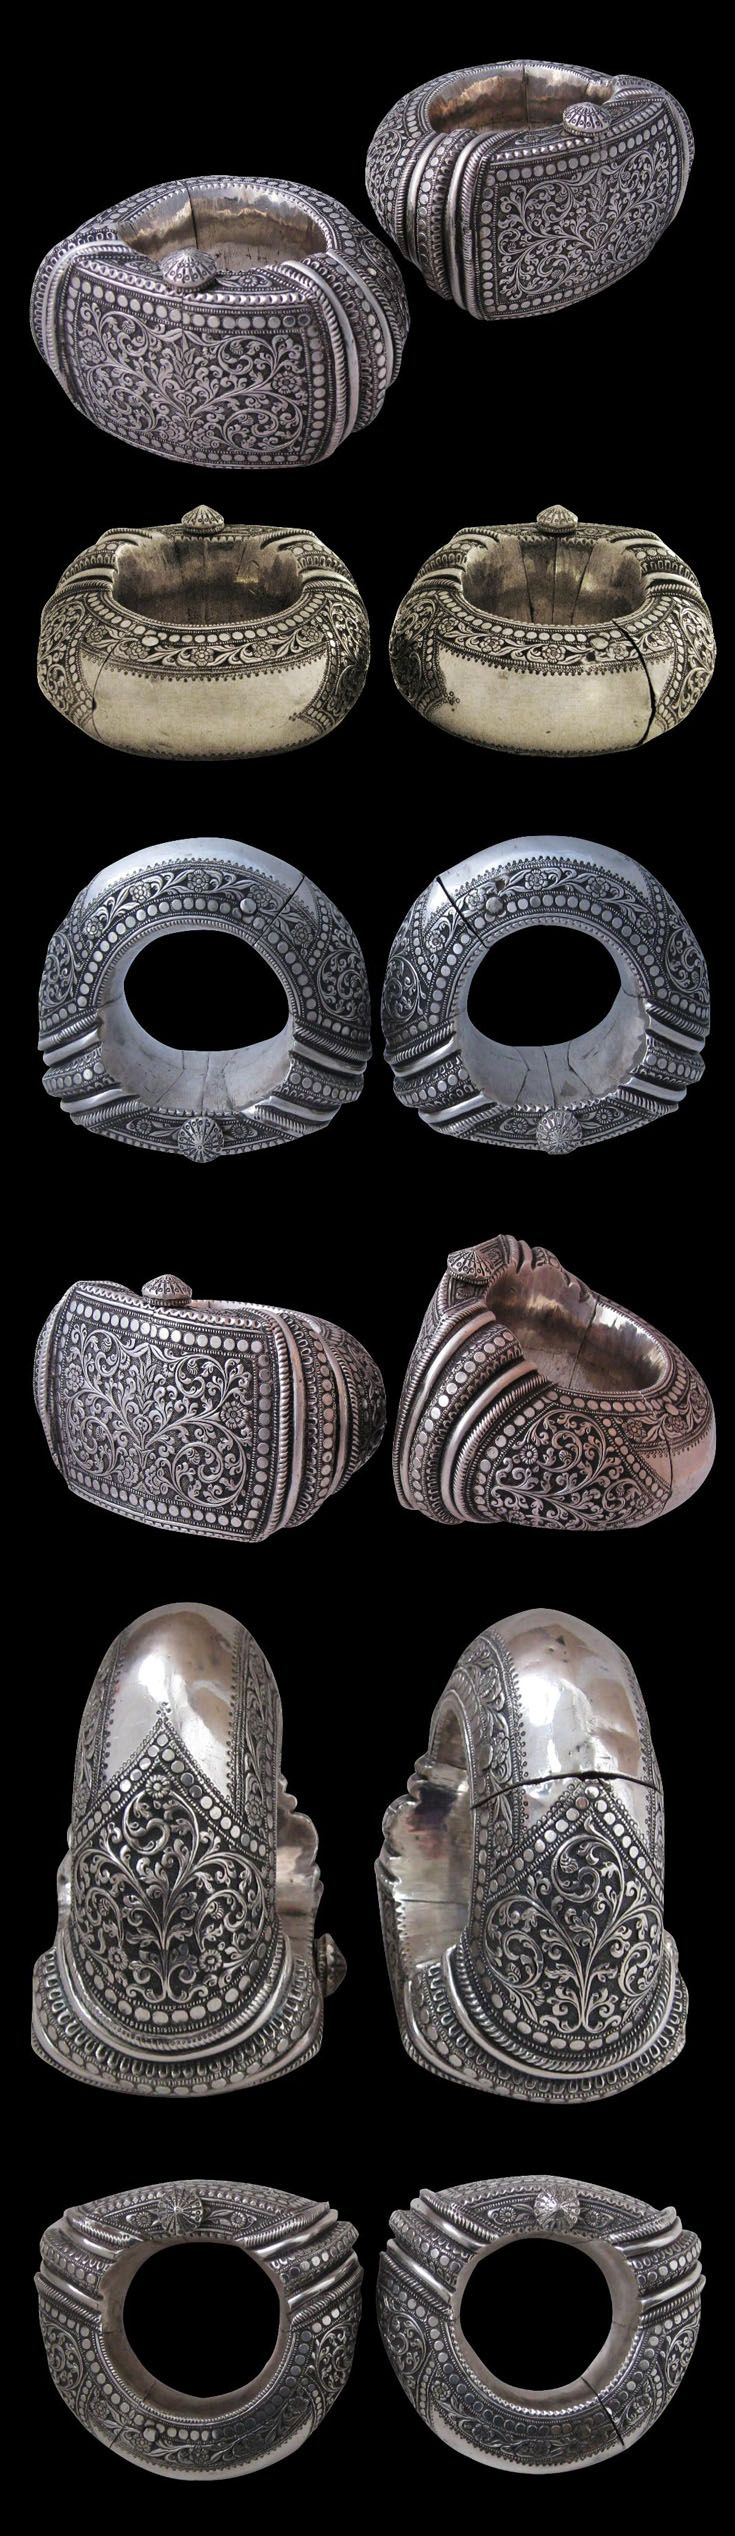 India - Gujarat, Vadodara (Baroda) | Pair of large highed anklets (Kadia); hollow sheet silver, decorated with punch decoration, chasing and applique work | ca. 19th century | Sold